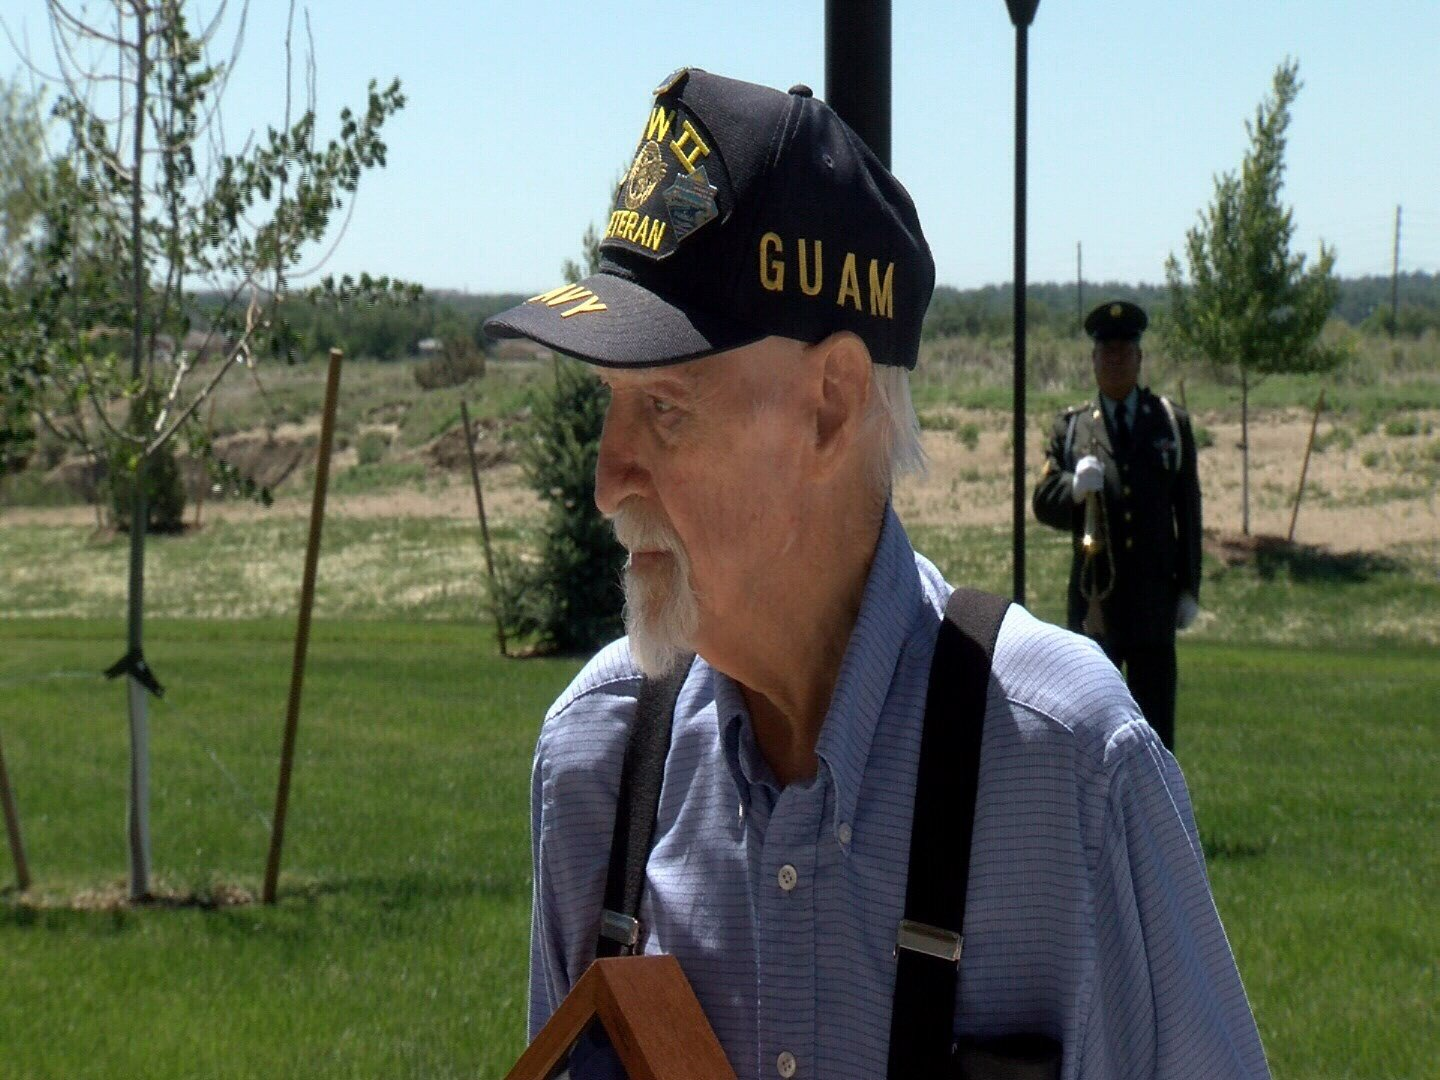 Veteran Ken Carter of Pueblo holds a flag during presented to him during ceremony Friday